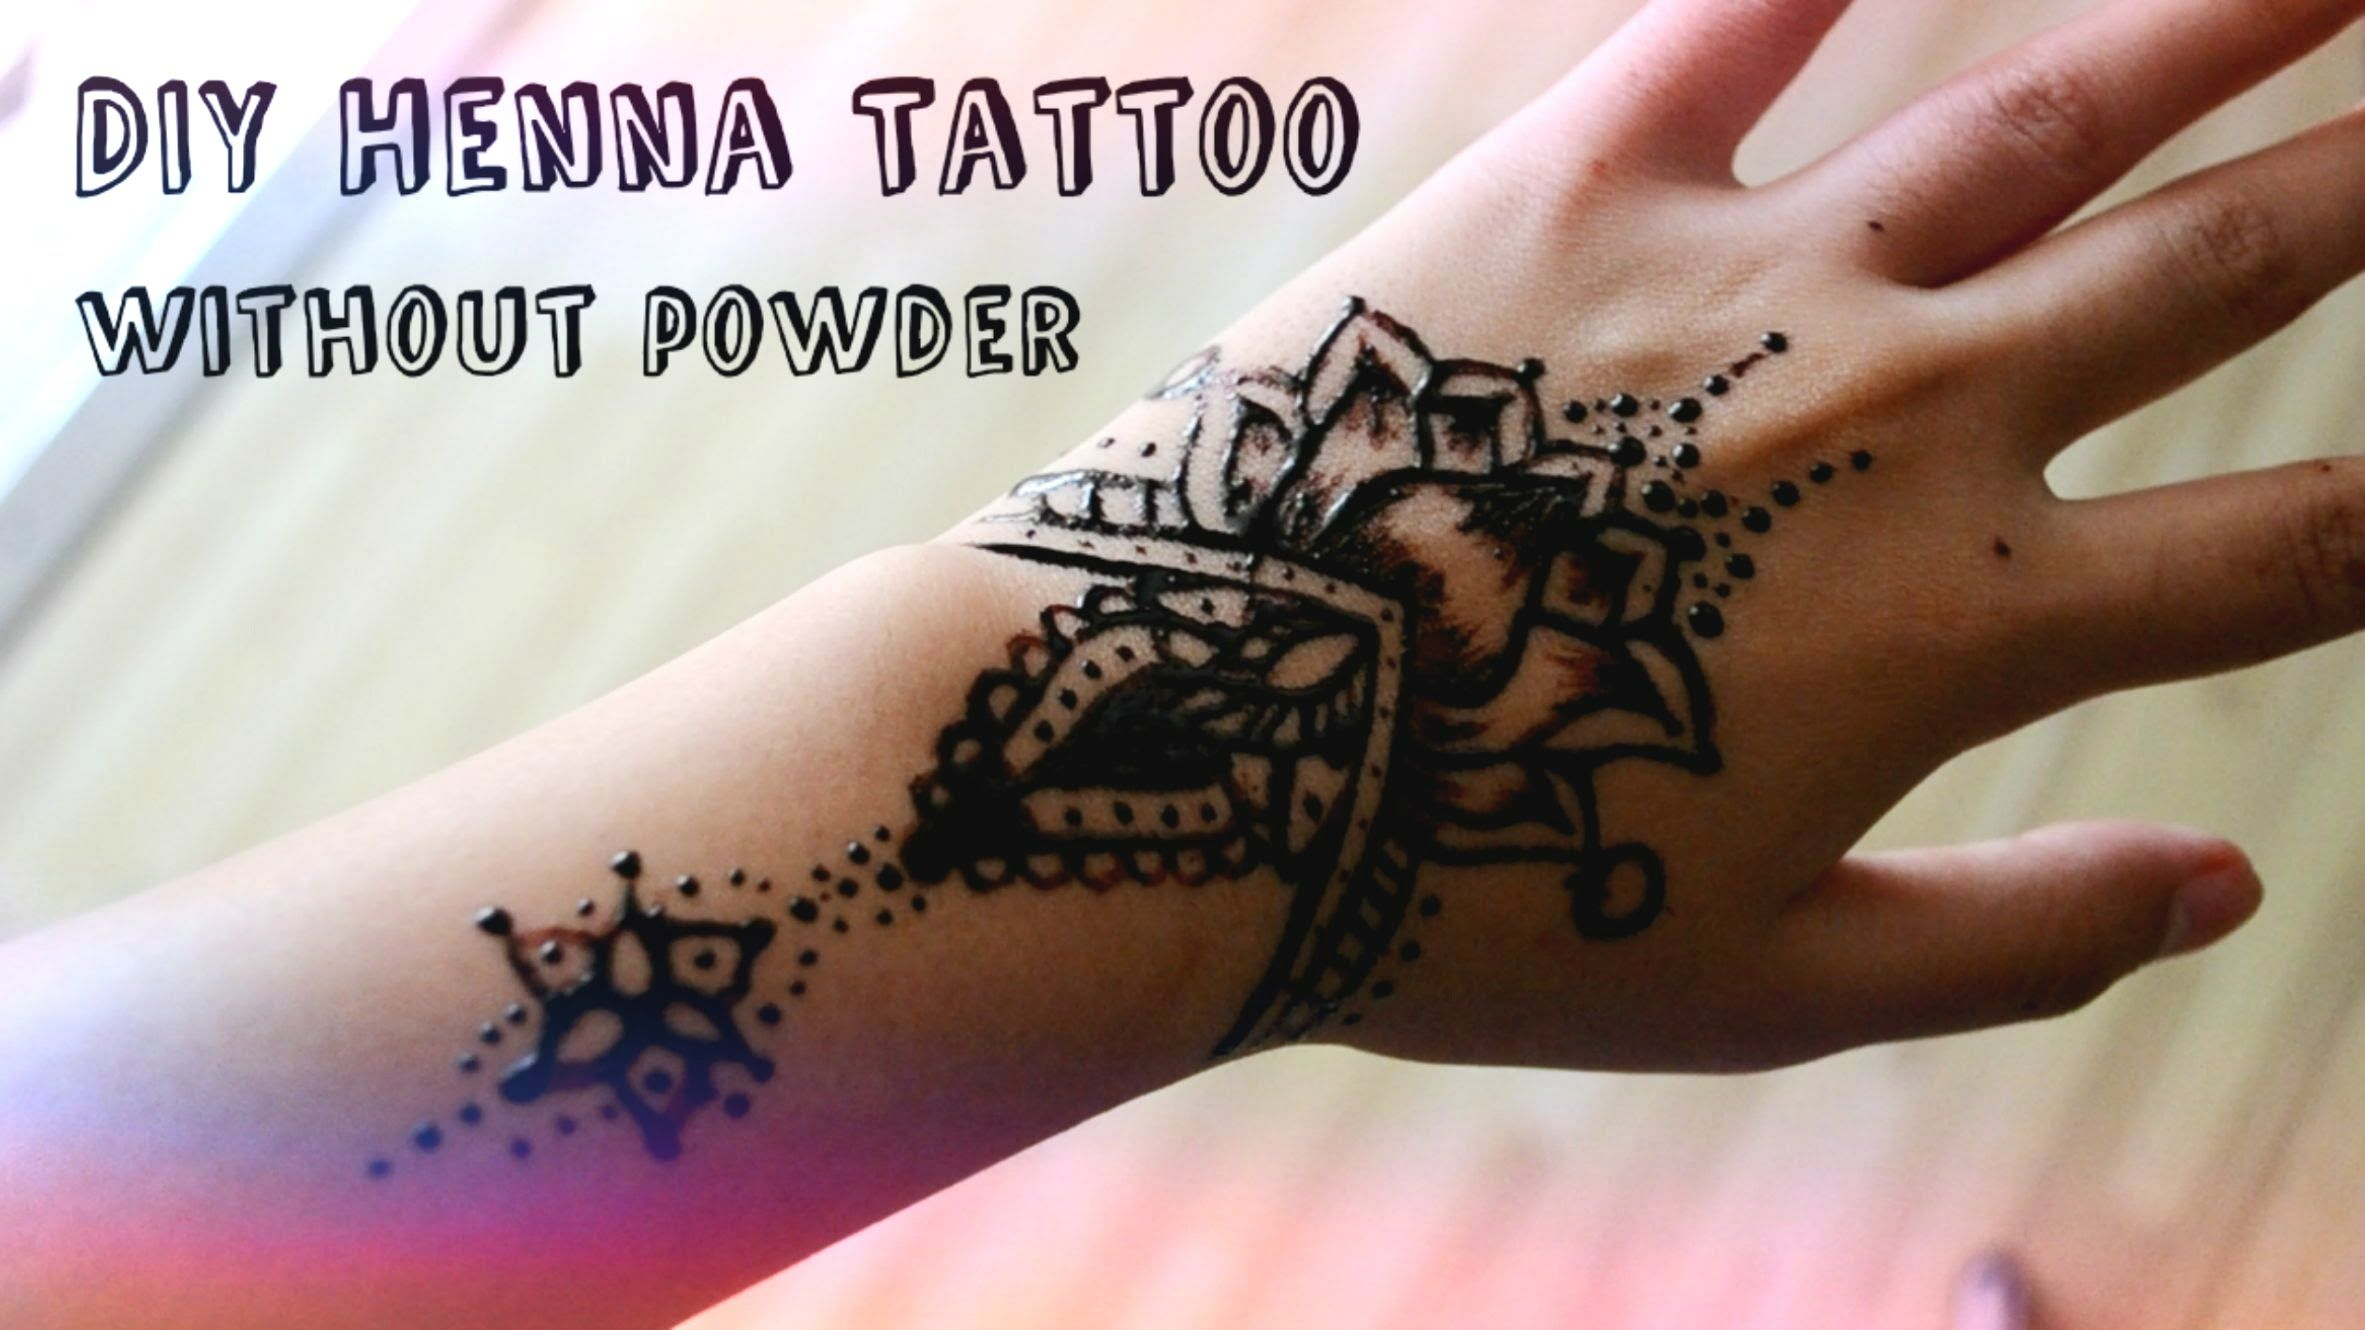 Diy Henna Tattoo Without Henna Powder Henna Tattoo Diy Diy Henna Homemade Henna